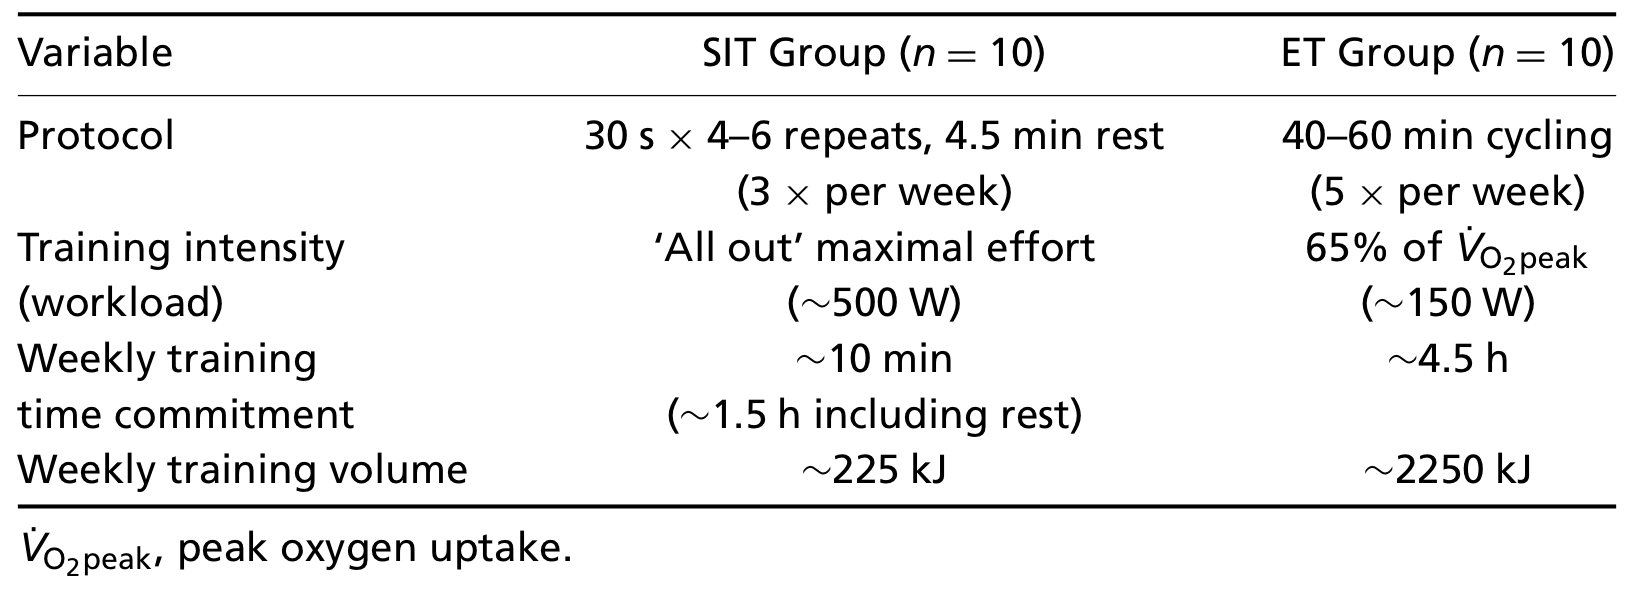 fissac_tabla 1 _ HIIT